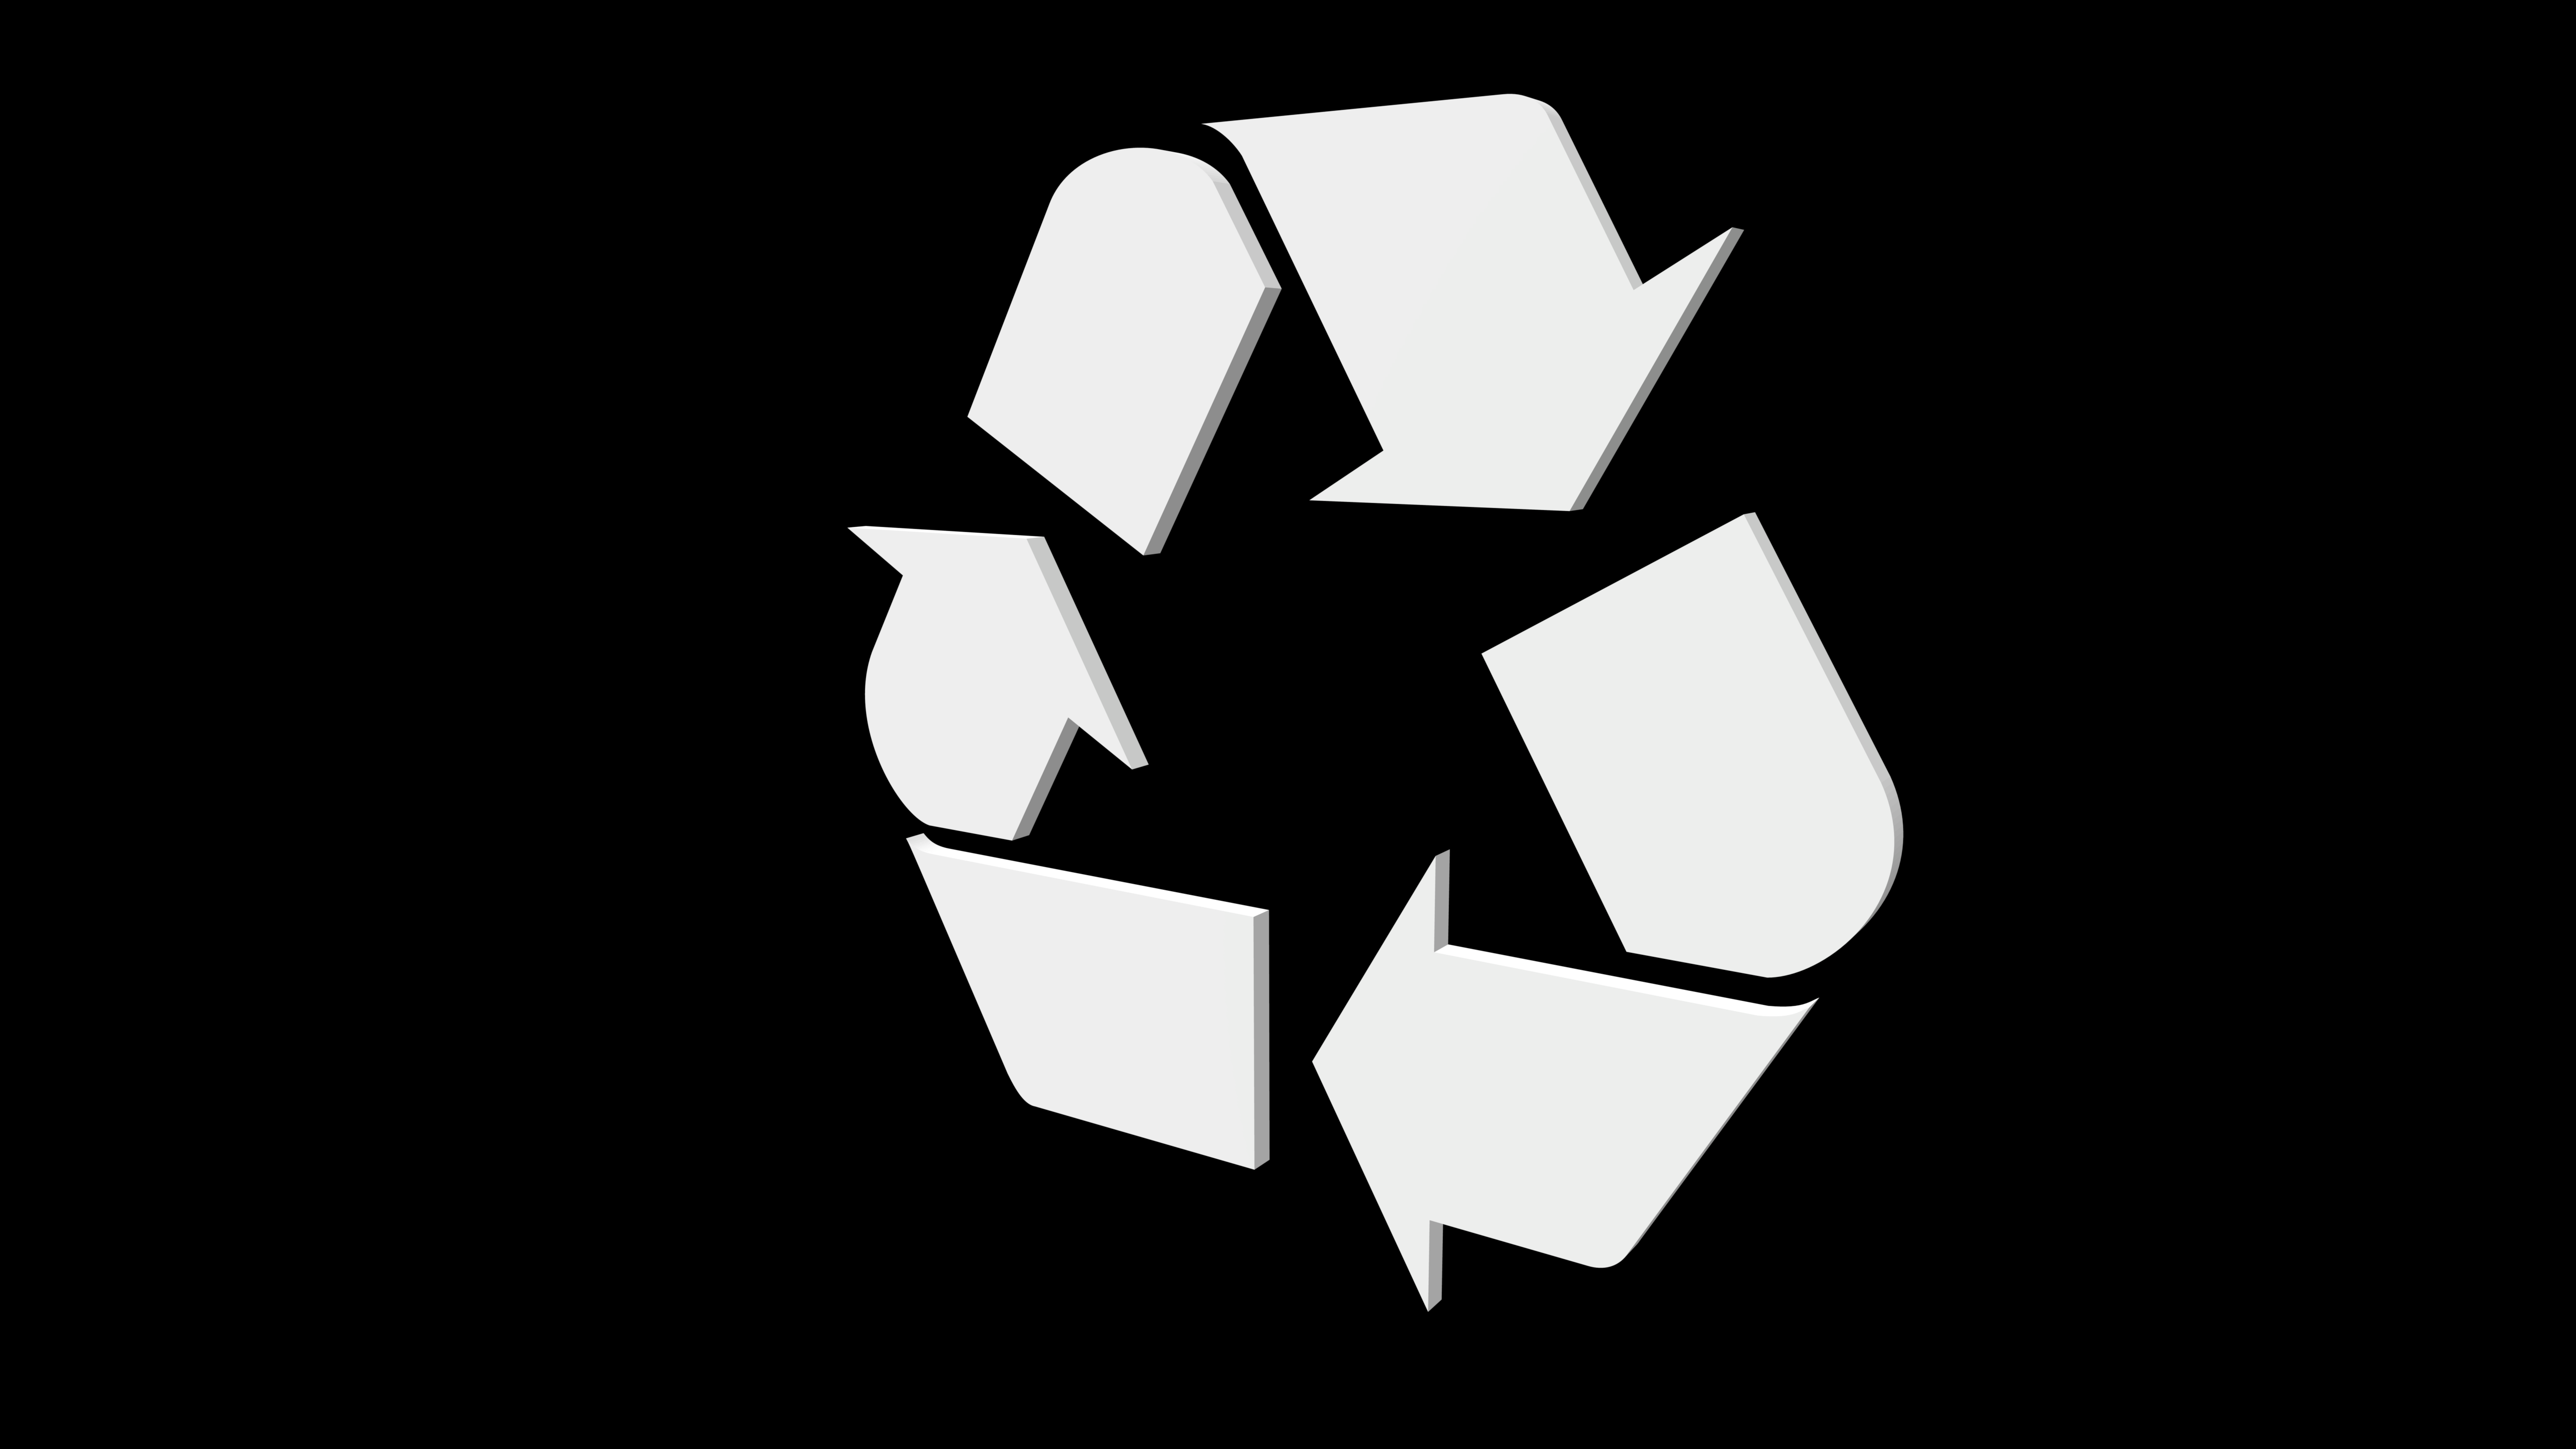 universal recycling logo.png Download free STL file universal recycling logo • 3D printing model, tom-harder-sec